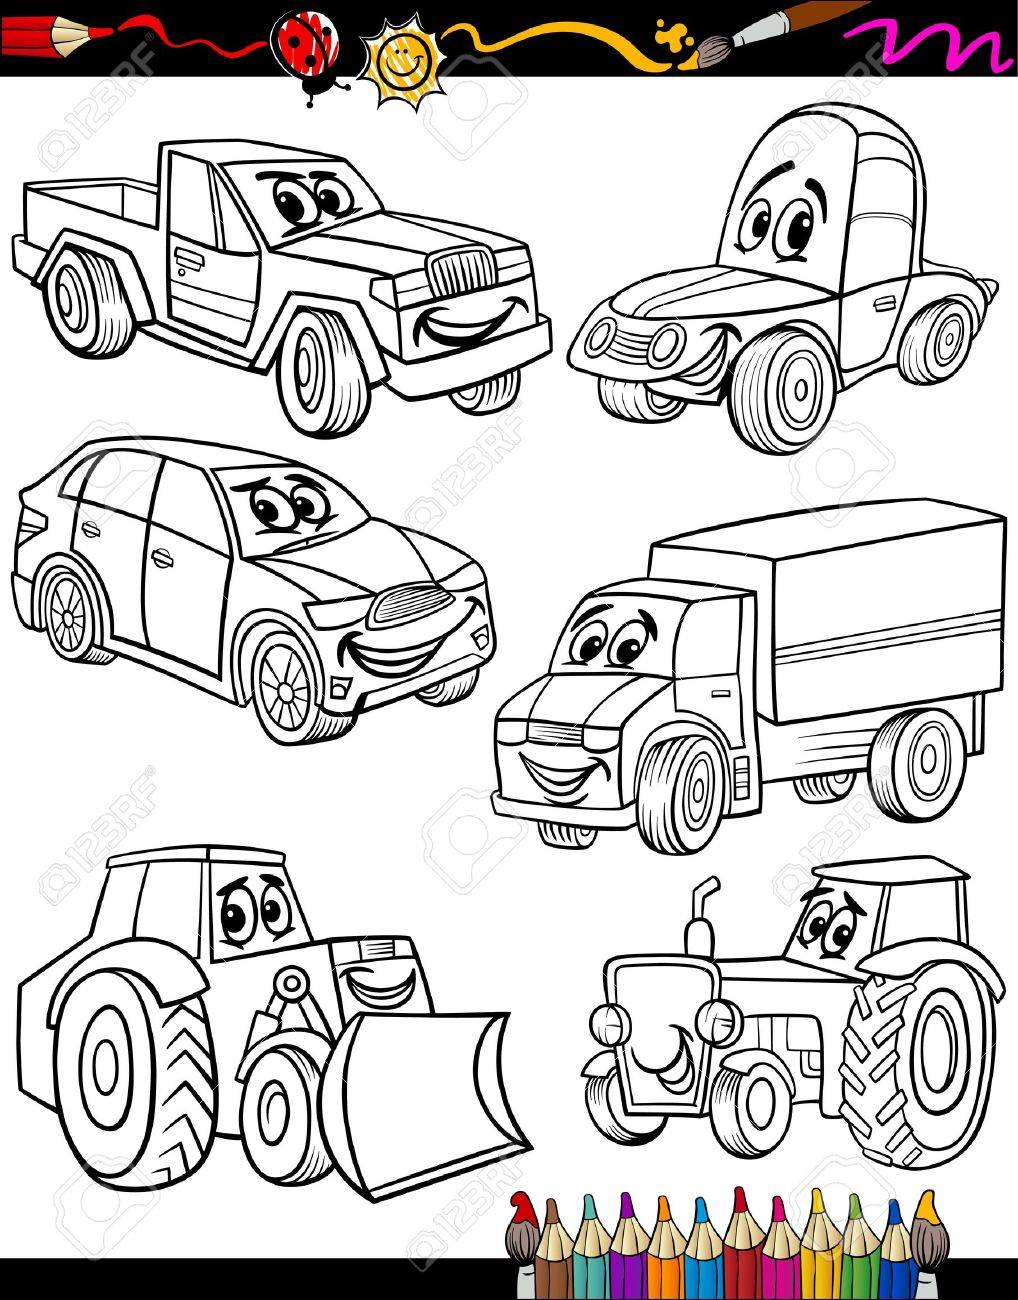 Coloring pictures of cars and trucks - Coloring Book Or Page Cartoon Illustration Of Black And White Cars Or Trucks Vehicles And Machines